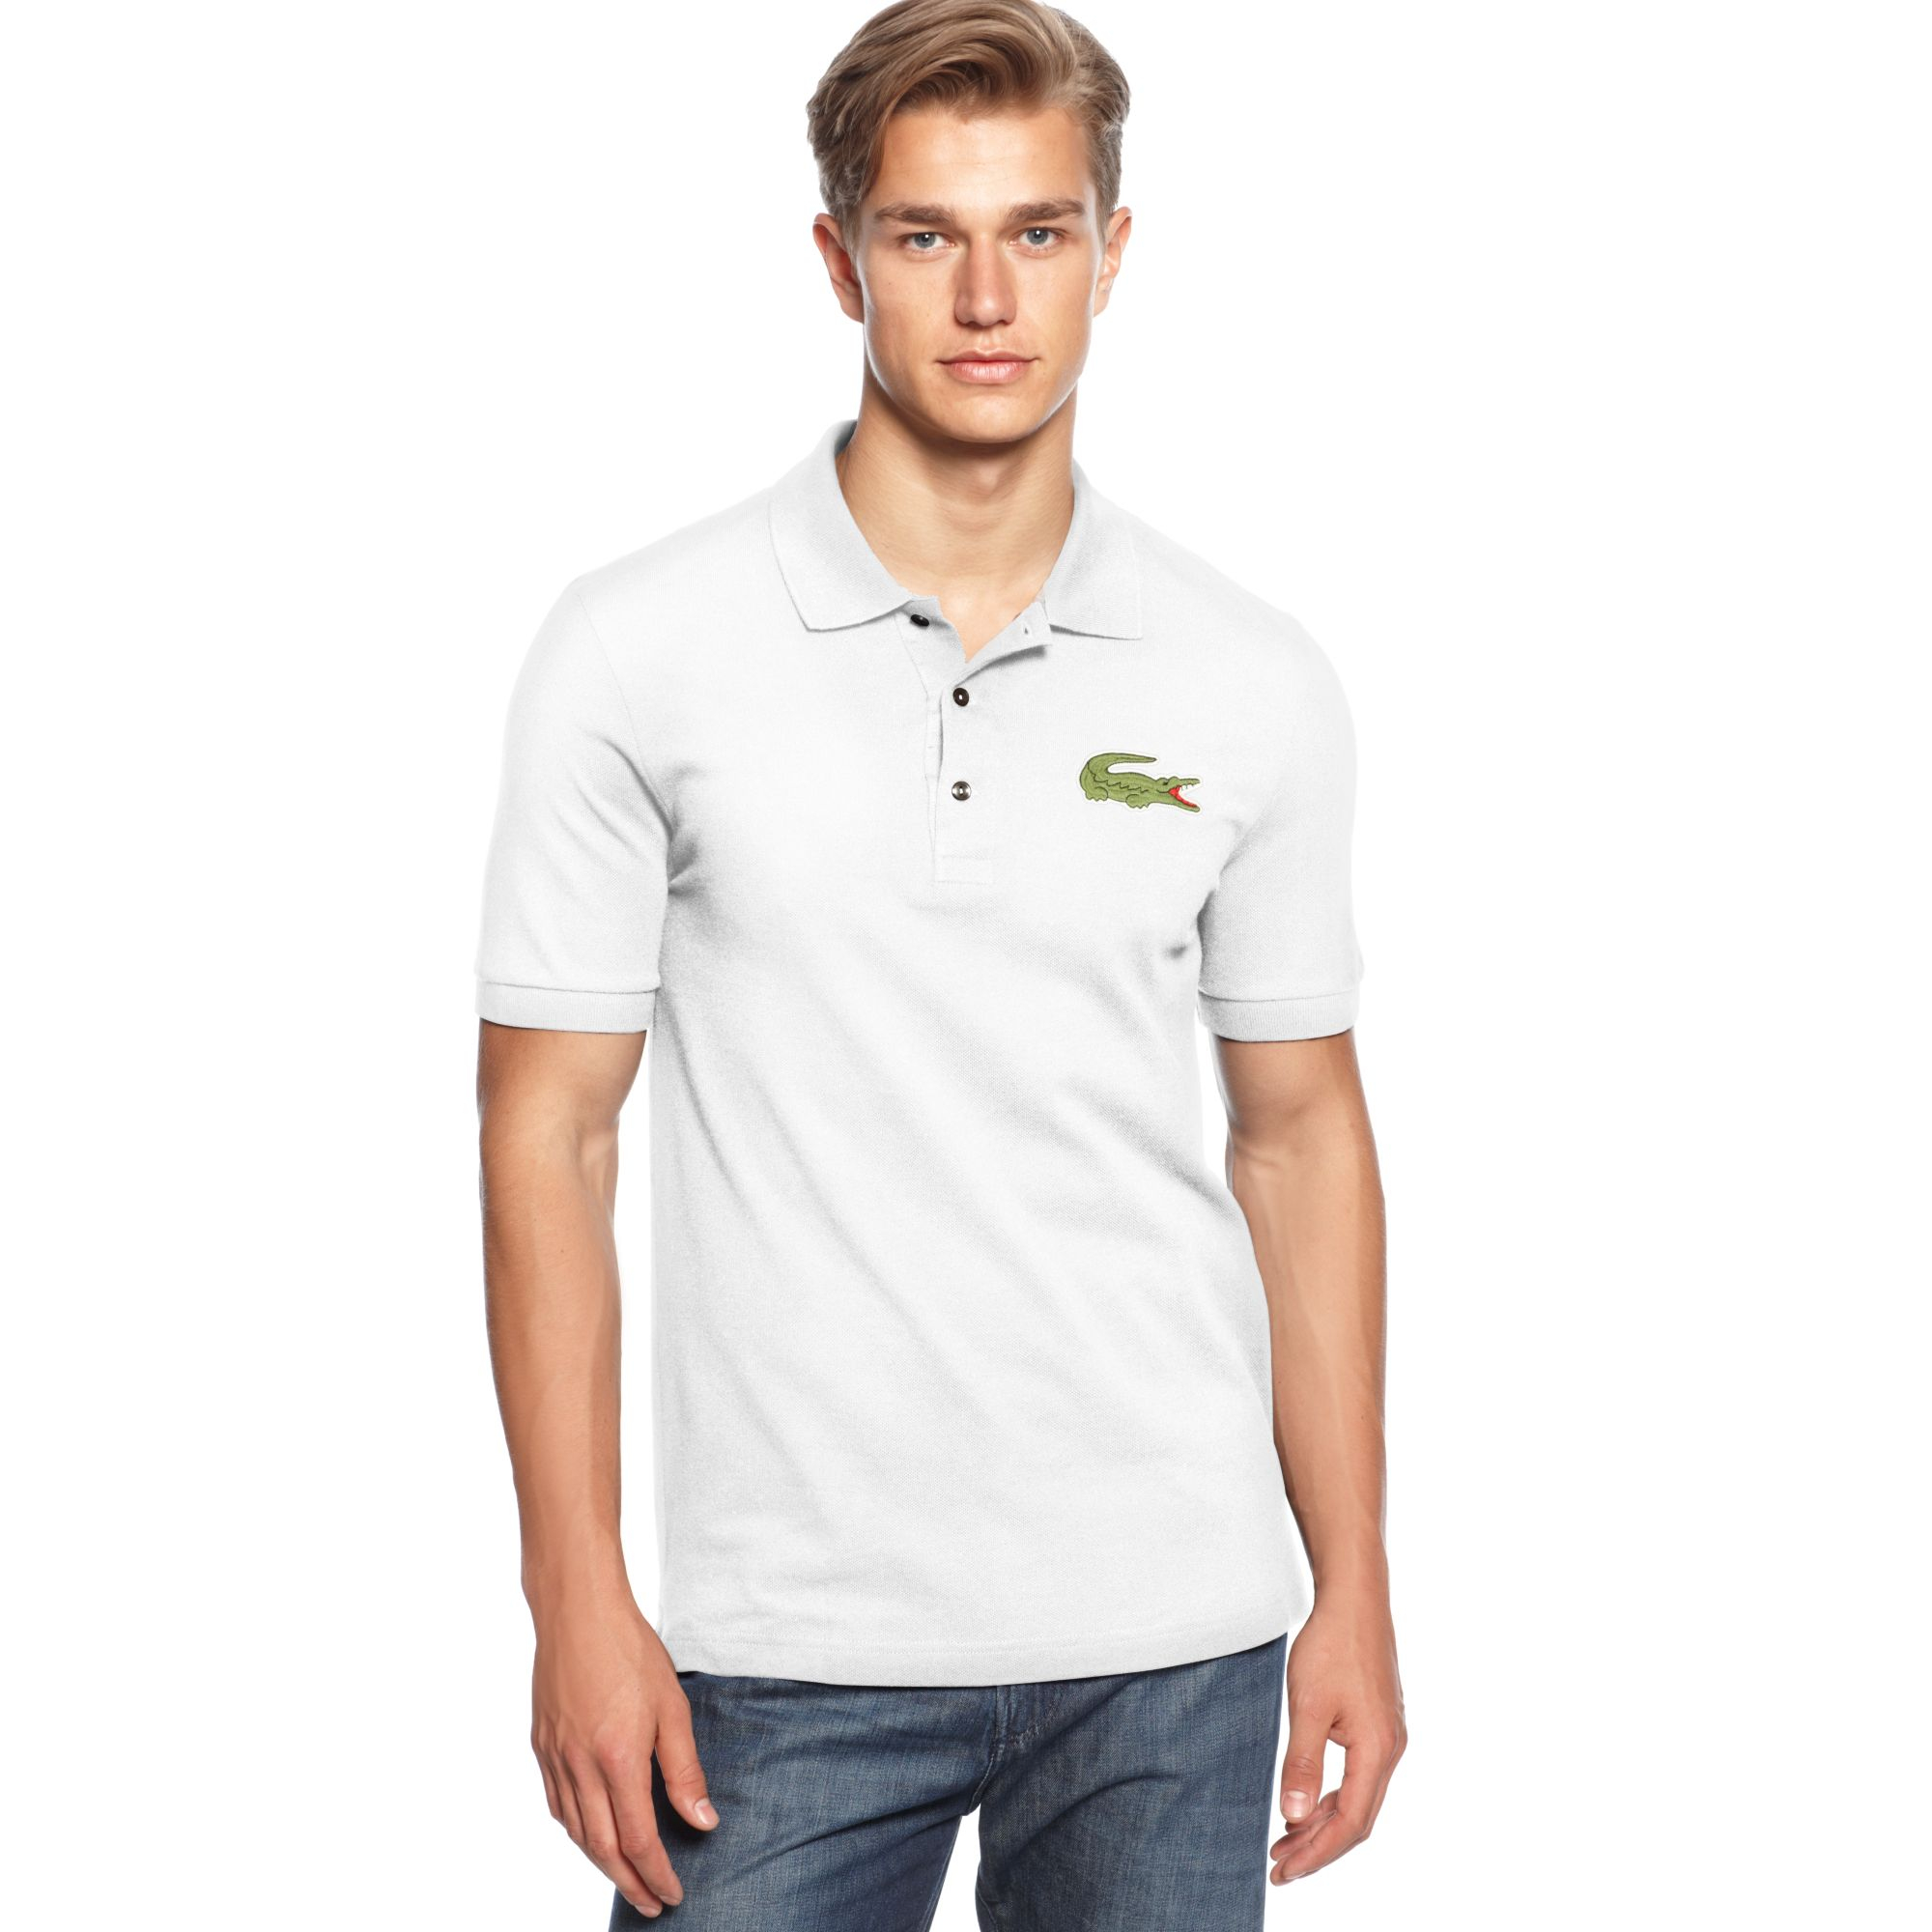 Lacoste oversized crocodile pique polo in white for men lyst for Lacoste shirts with big alligator